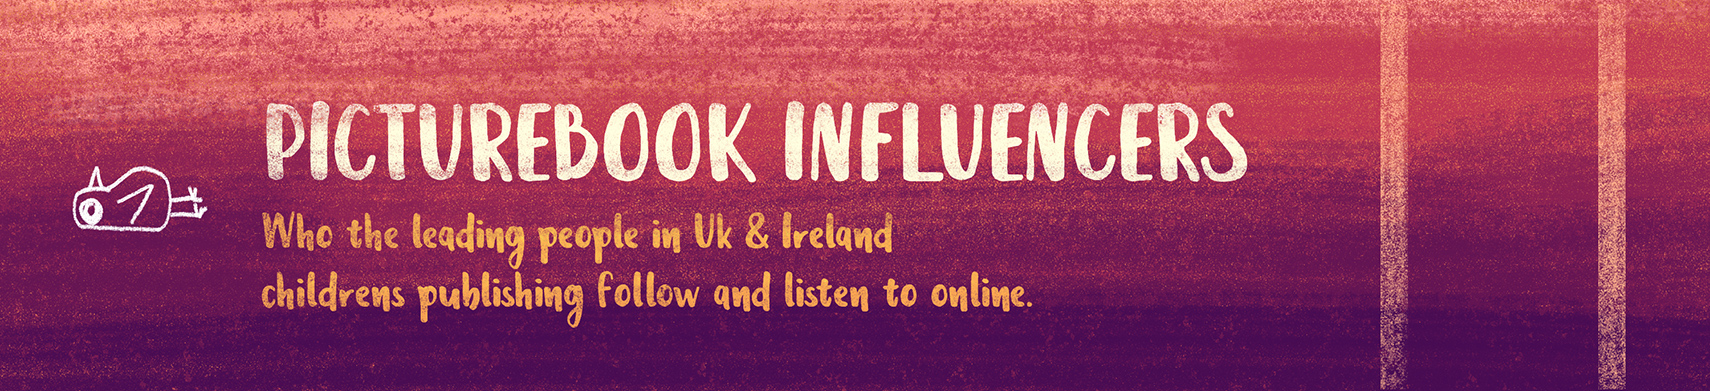 The top 500 influencers in Picturebook and Children's